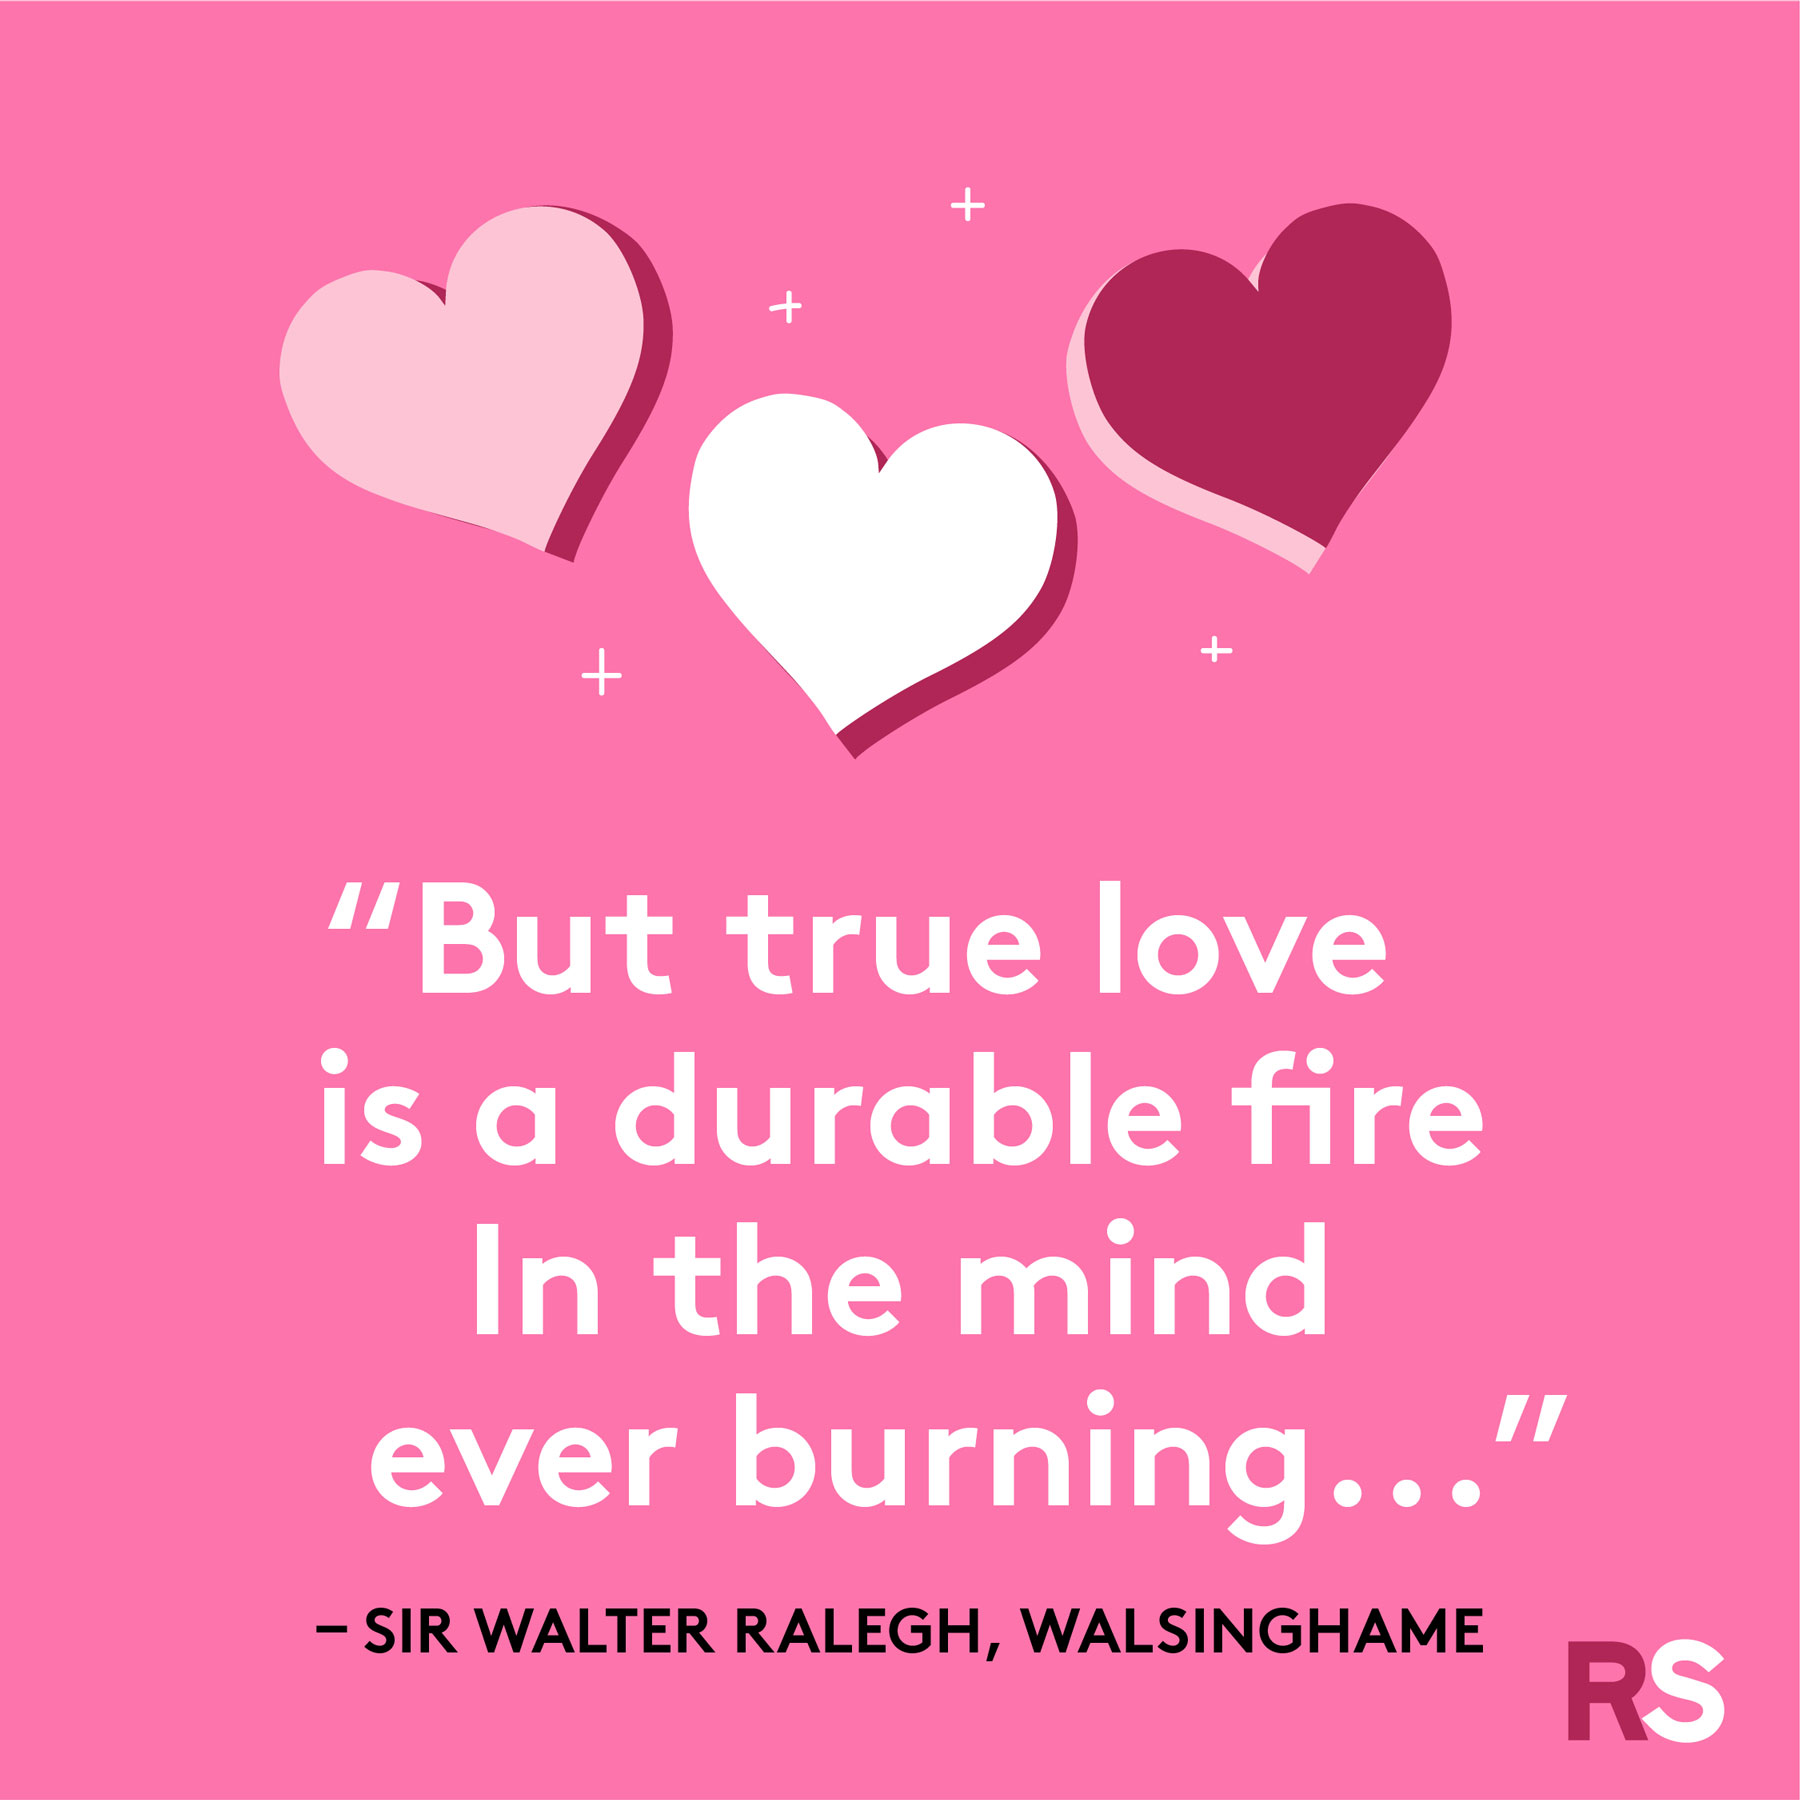 Love quotes, quotes about love - Sir Walter Ralegh, Walsinghame